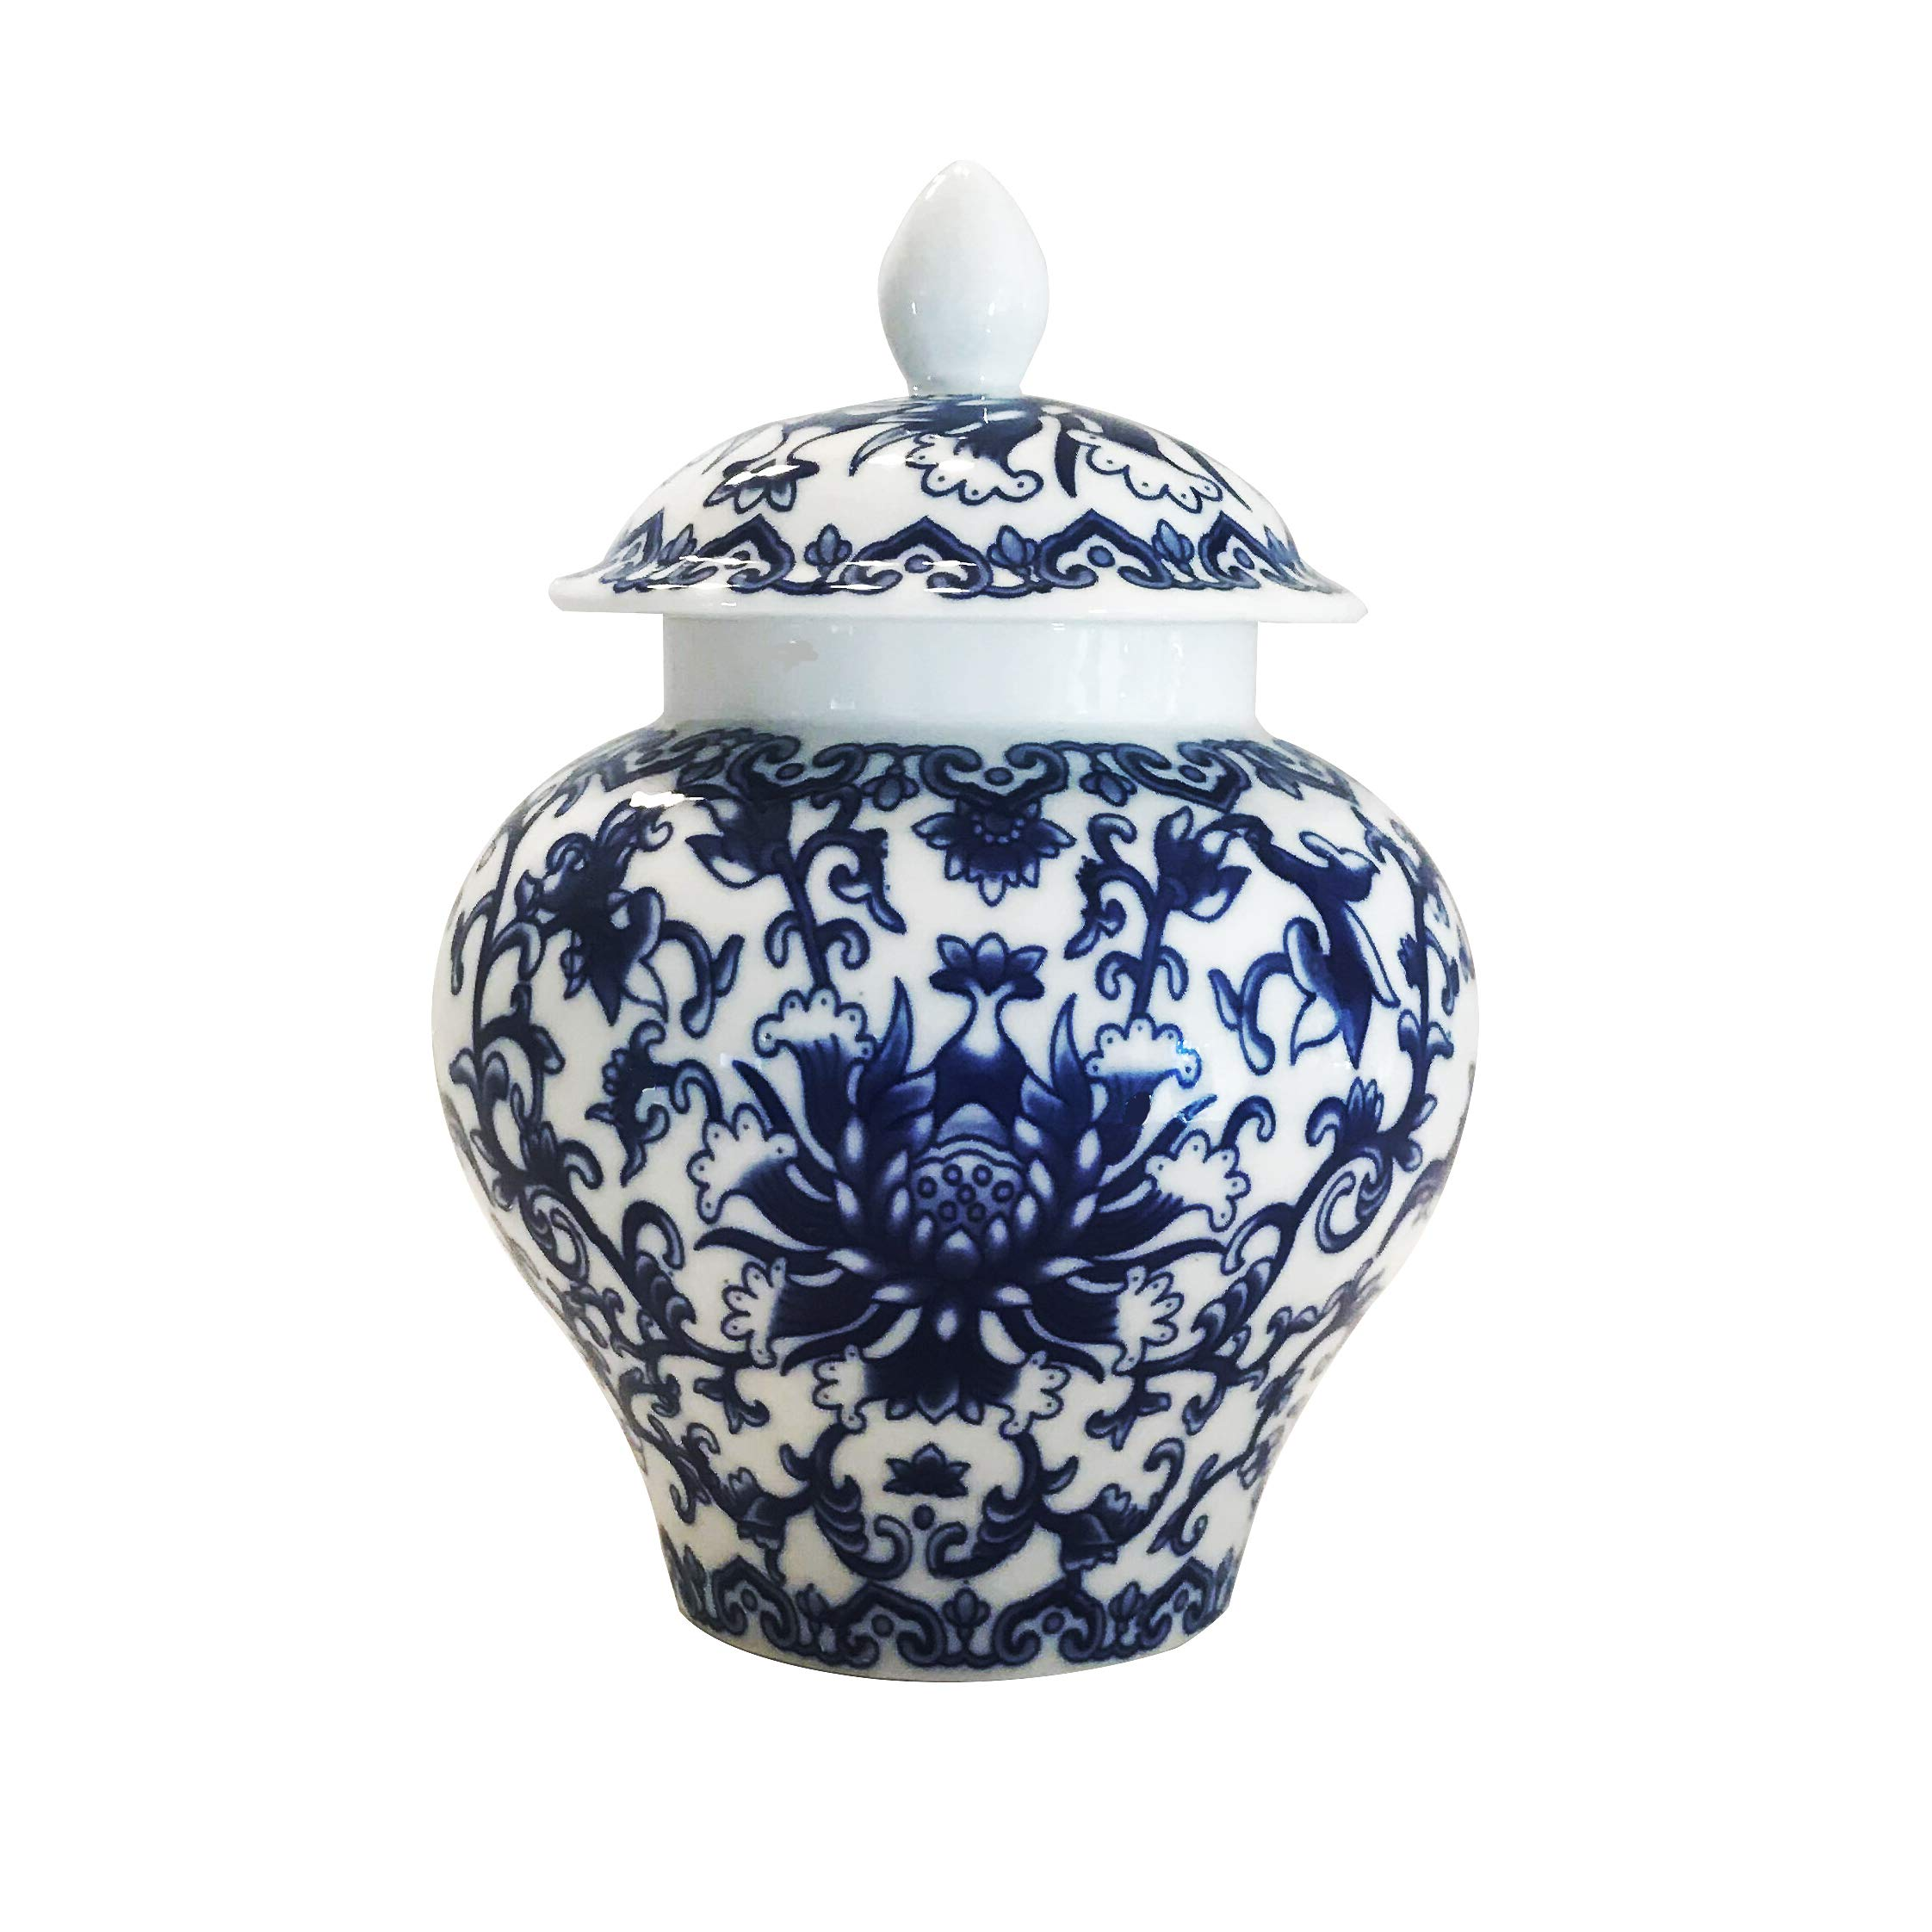 Ancient Blue and White Porcelain Helmet-shaped Temple Jar (Medium size) by Goodman and Wife